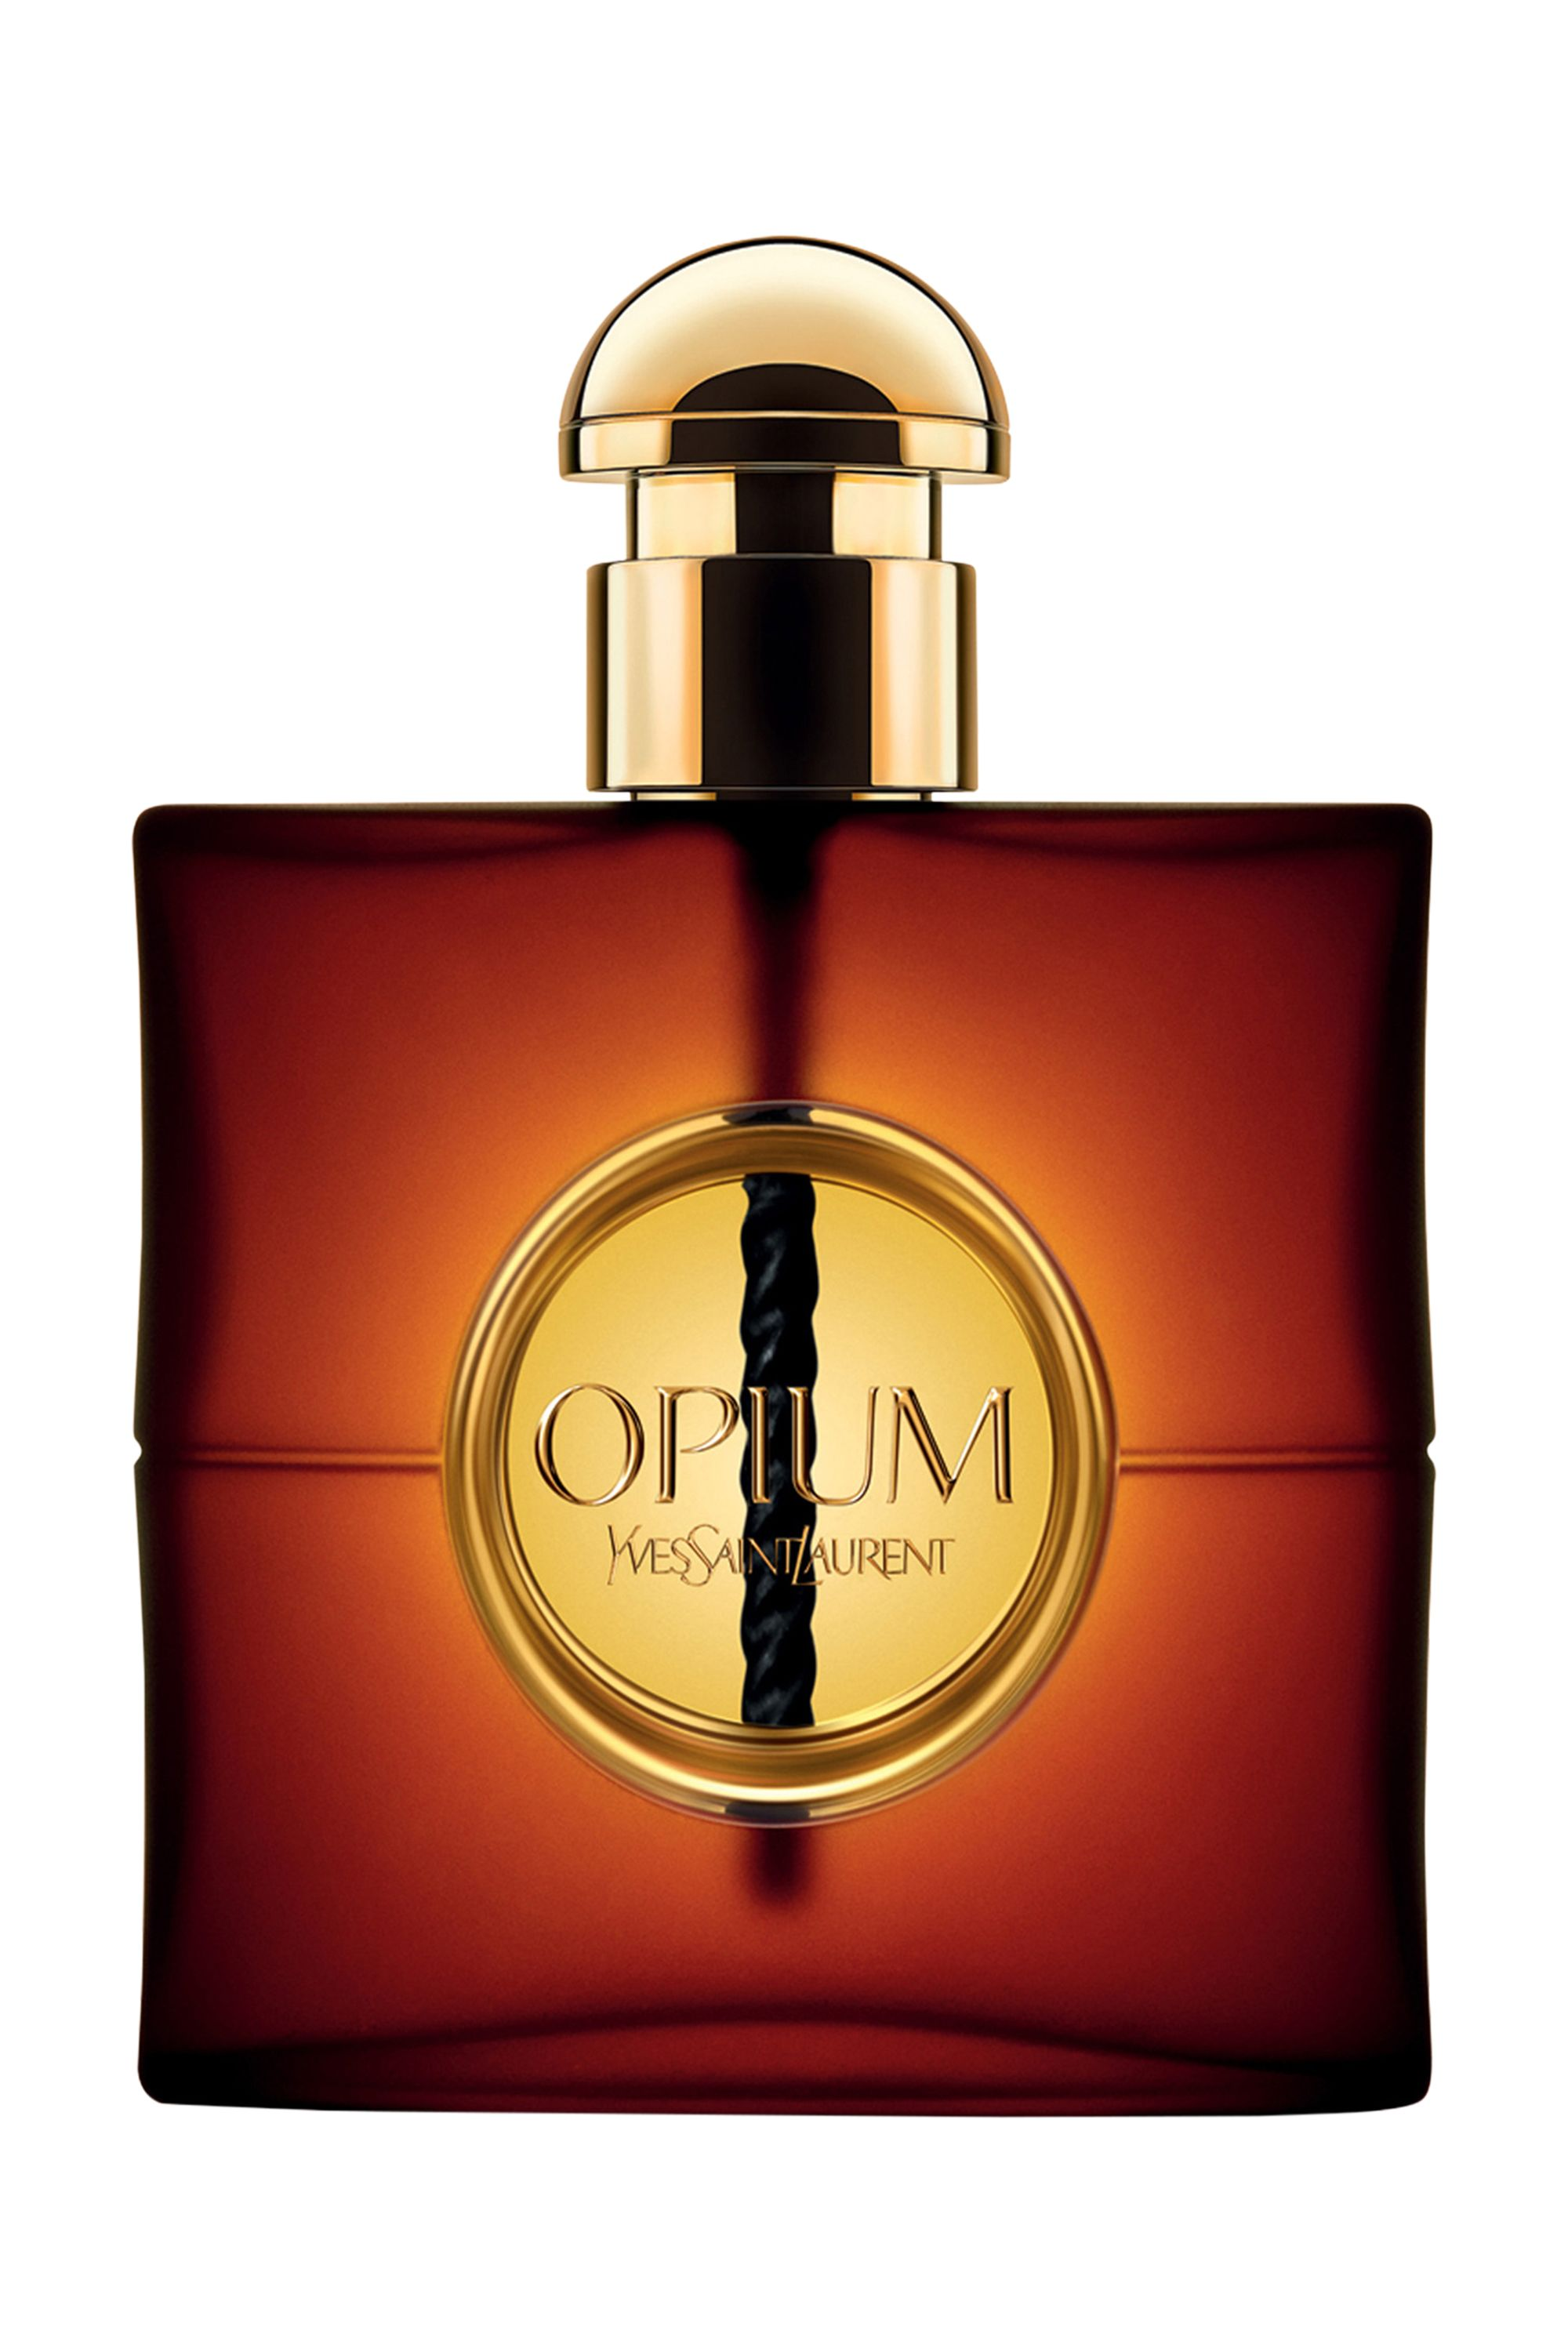 Blissim : Yves Saint Laurent - Opium Eau de Parfum - 90 ml